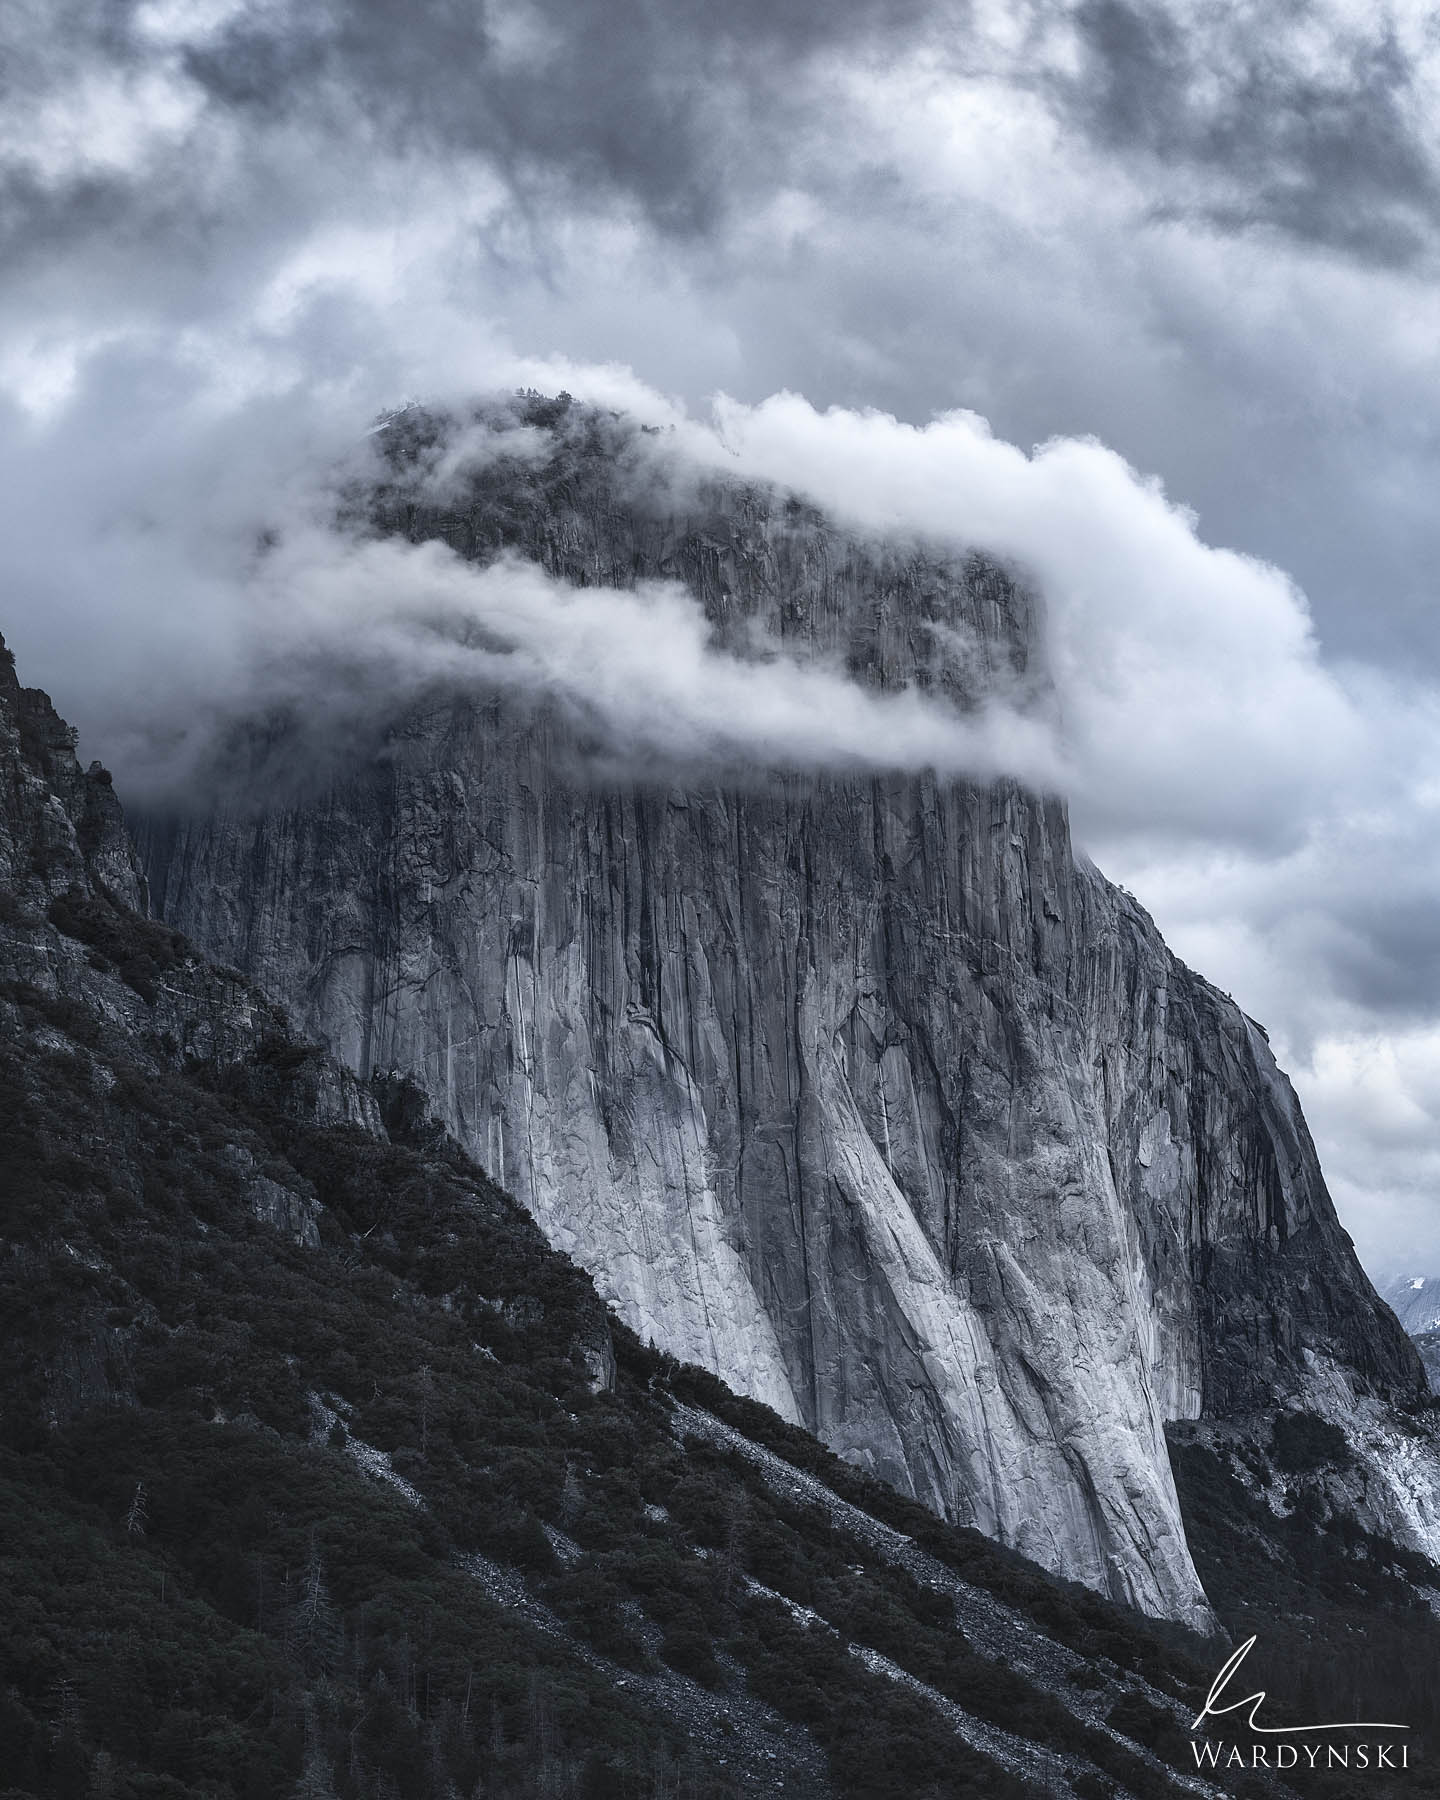 Fine Art Print | Limited Edition of 200  Clouds form around El Capitan like a crown on a king. This majestic rock towers 3,000...